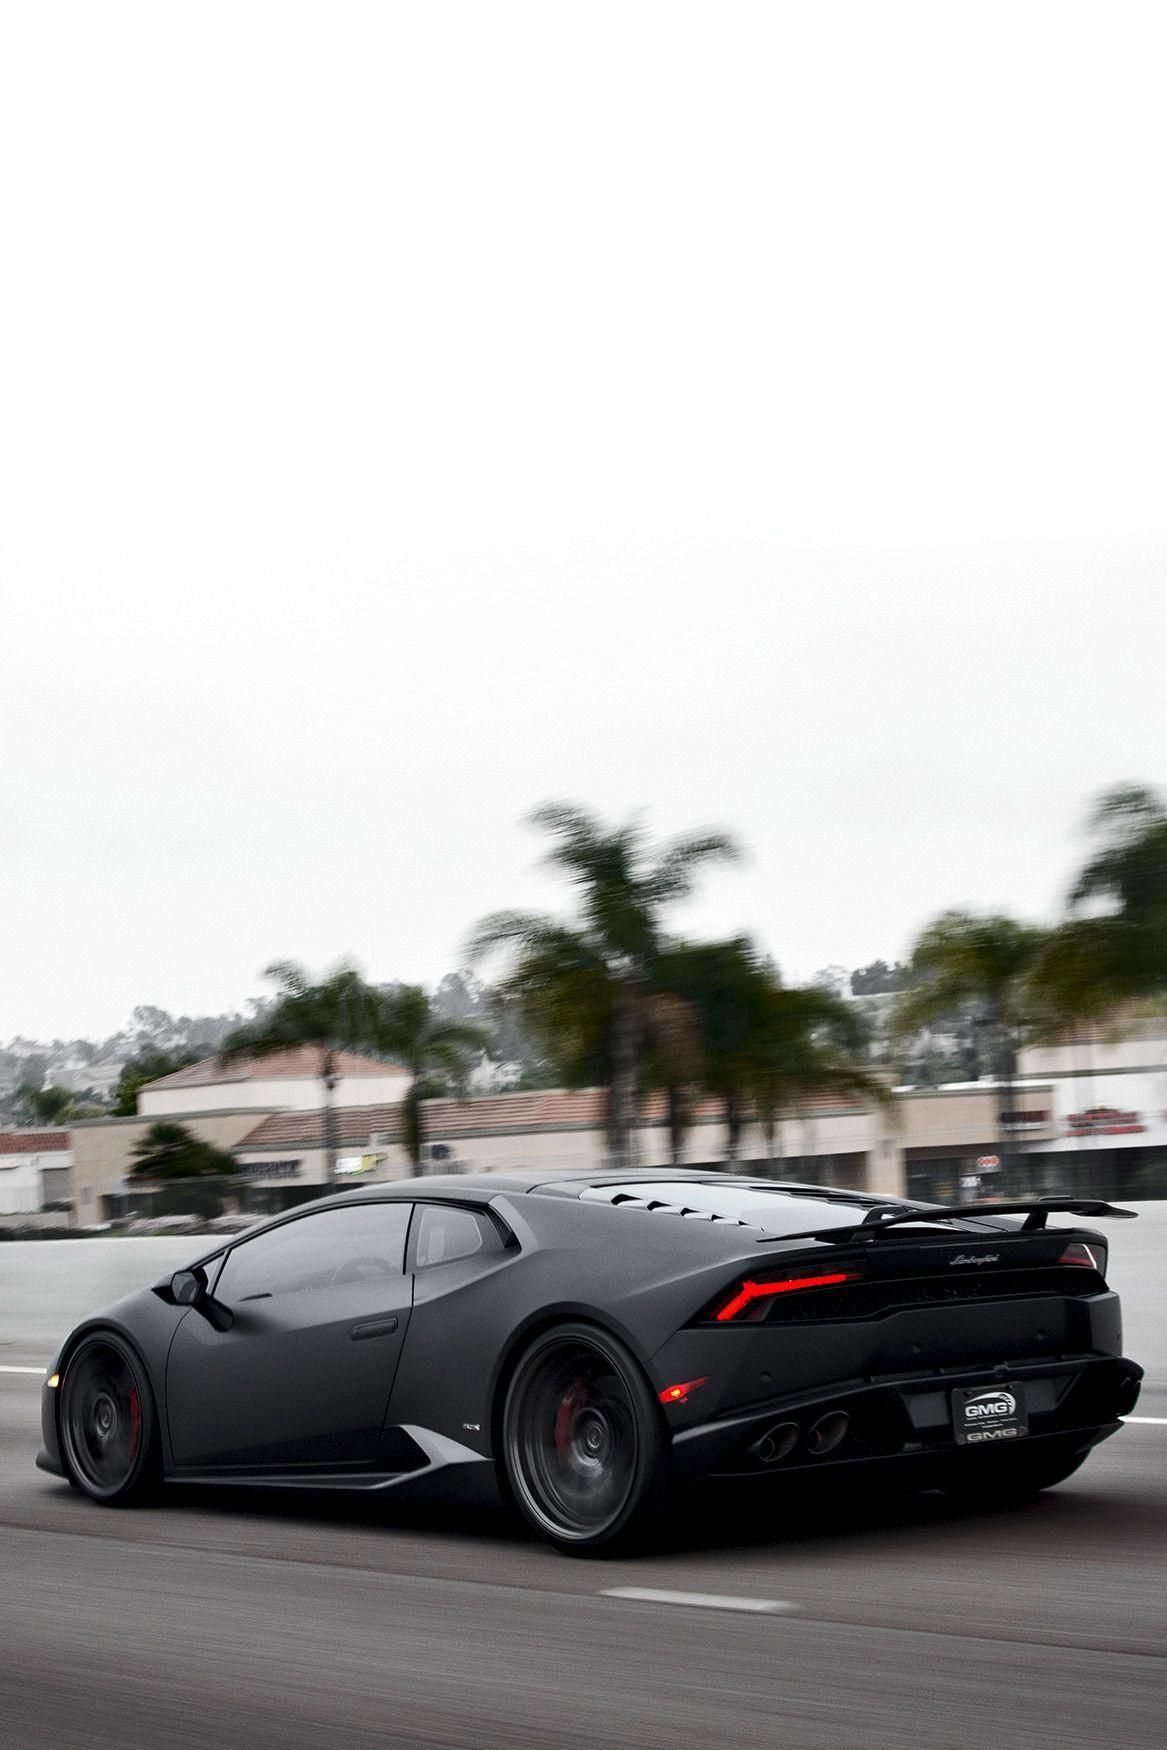 Lamborghini Huracan Low Storage Rates And Great Move In Specials Look No Further Everest Self Storage Is Th Lamborghini Huracan Lamborghini Lamborghini Veneno